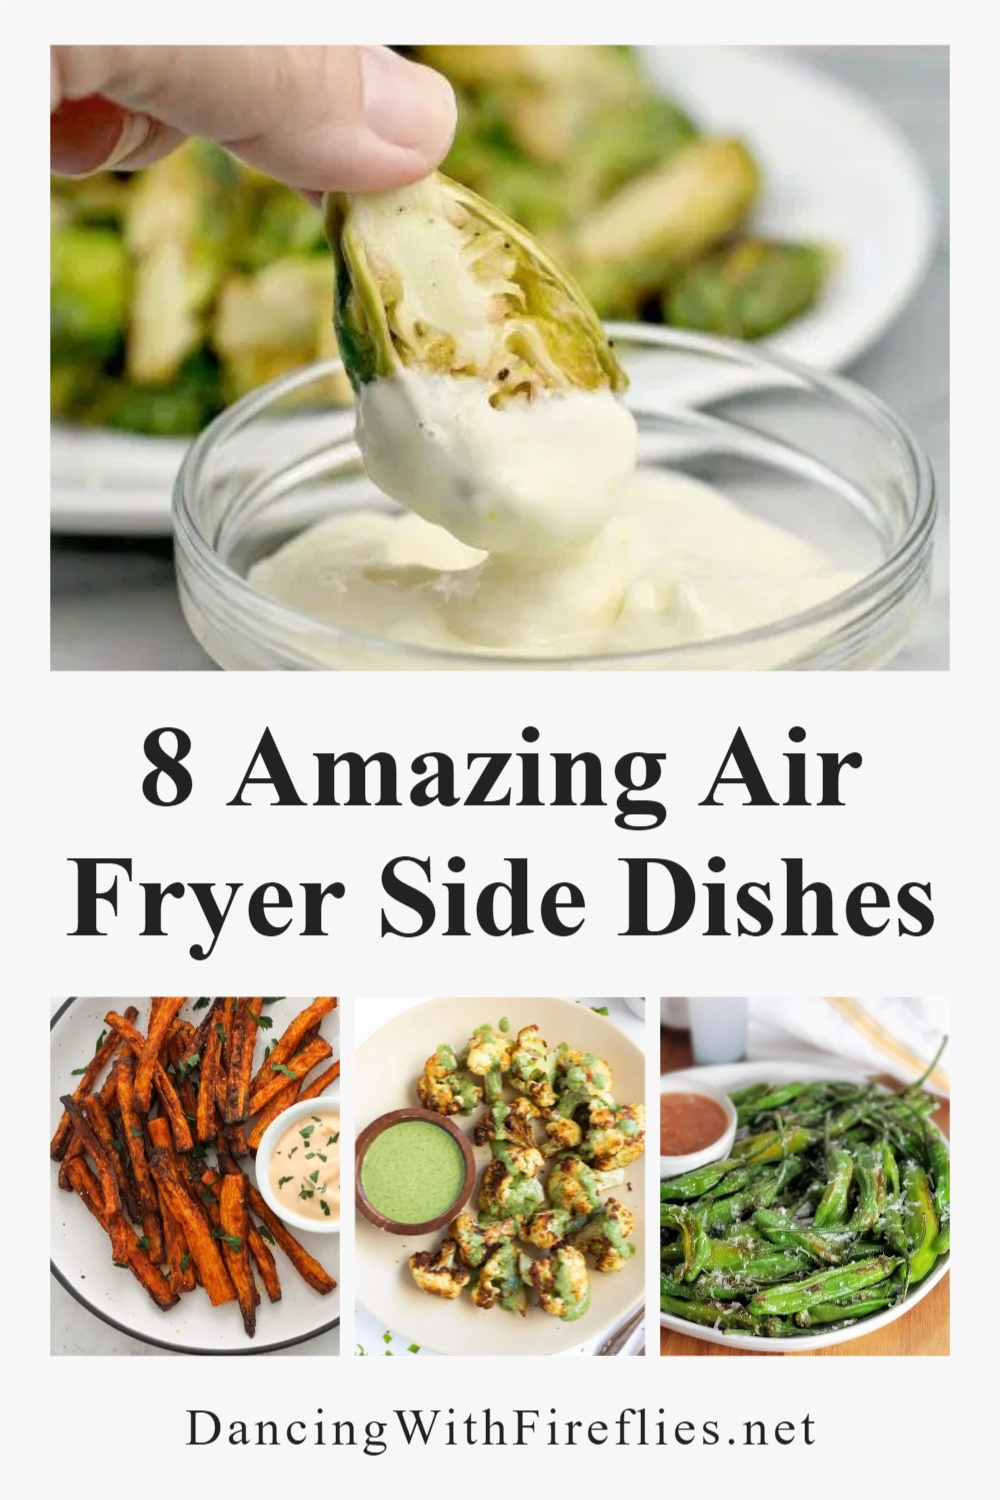 8-Amazing-Air-Fryer-Side-Dishes 1